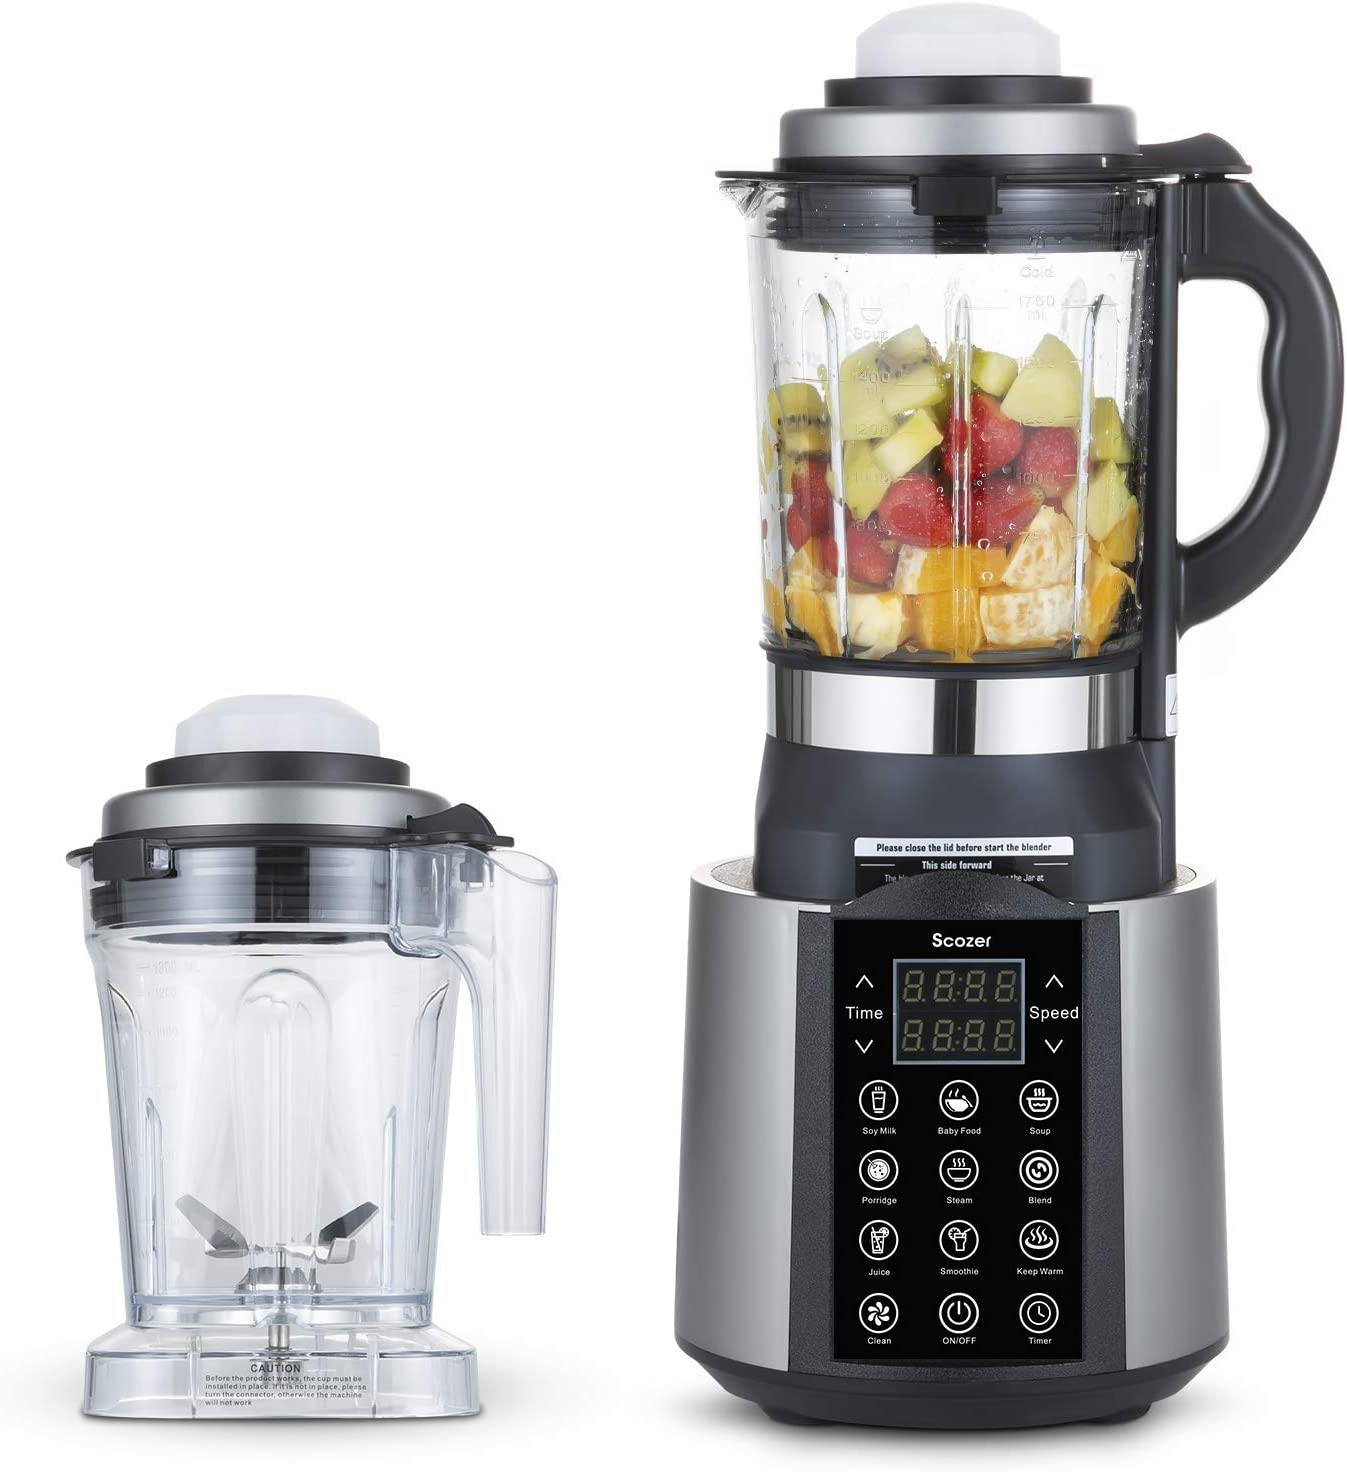 Cooking Blender, Scozer Hot and Cold Countertop Blender, Professional High-Speed Blender with 9 Pre-Programmed Settings, 800W Countertop Blender for Smoothies, Soup, Grind, Shakes